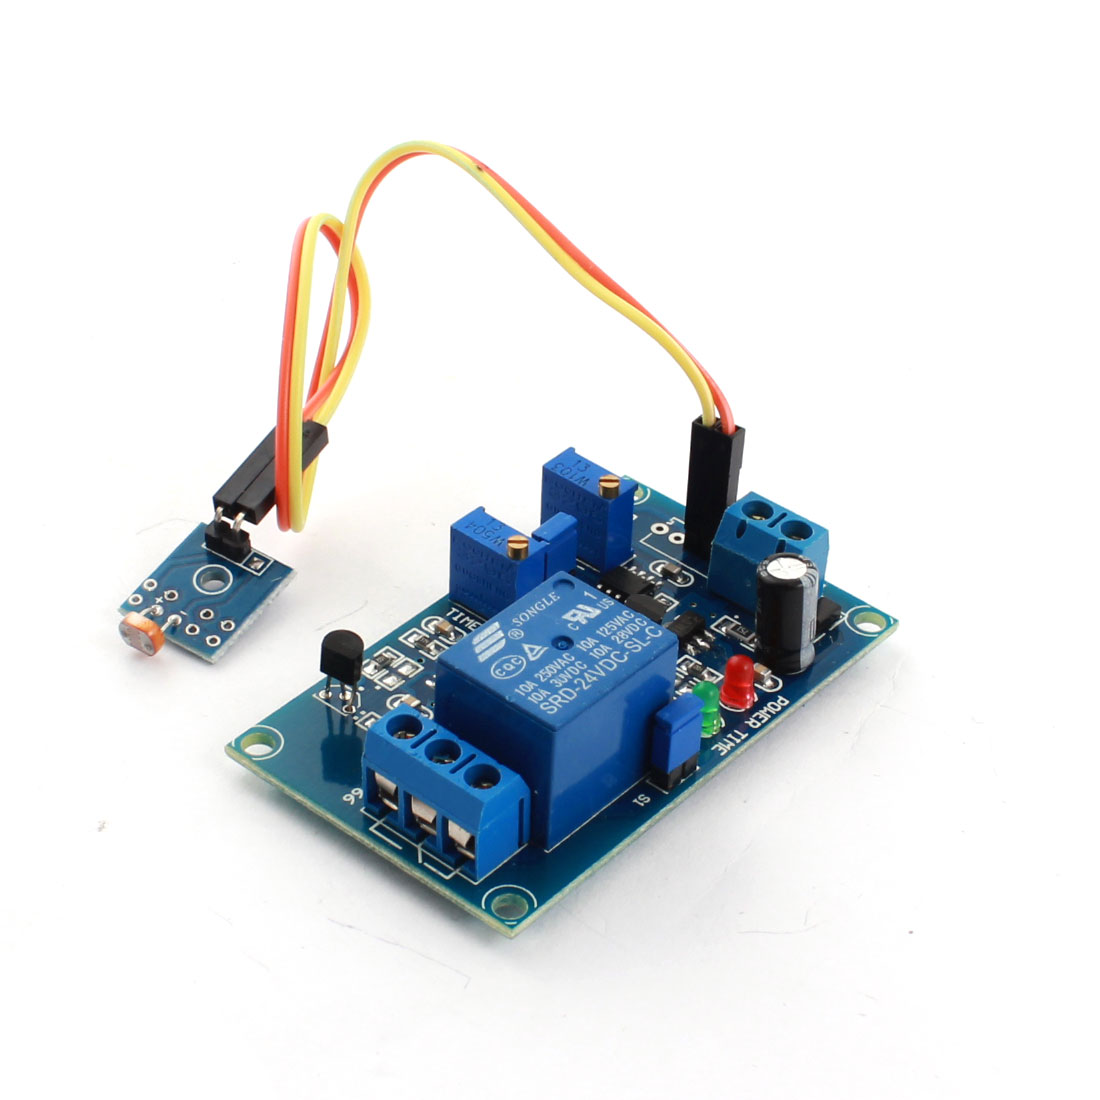 DC5V 1 Channel Non-light Operation Photovaristor Diode Time Delay PCB Board Relay Module